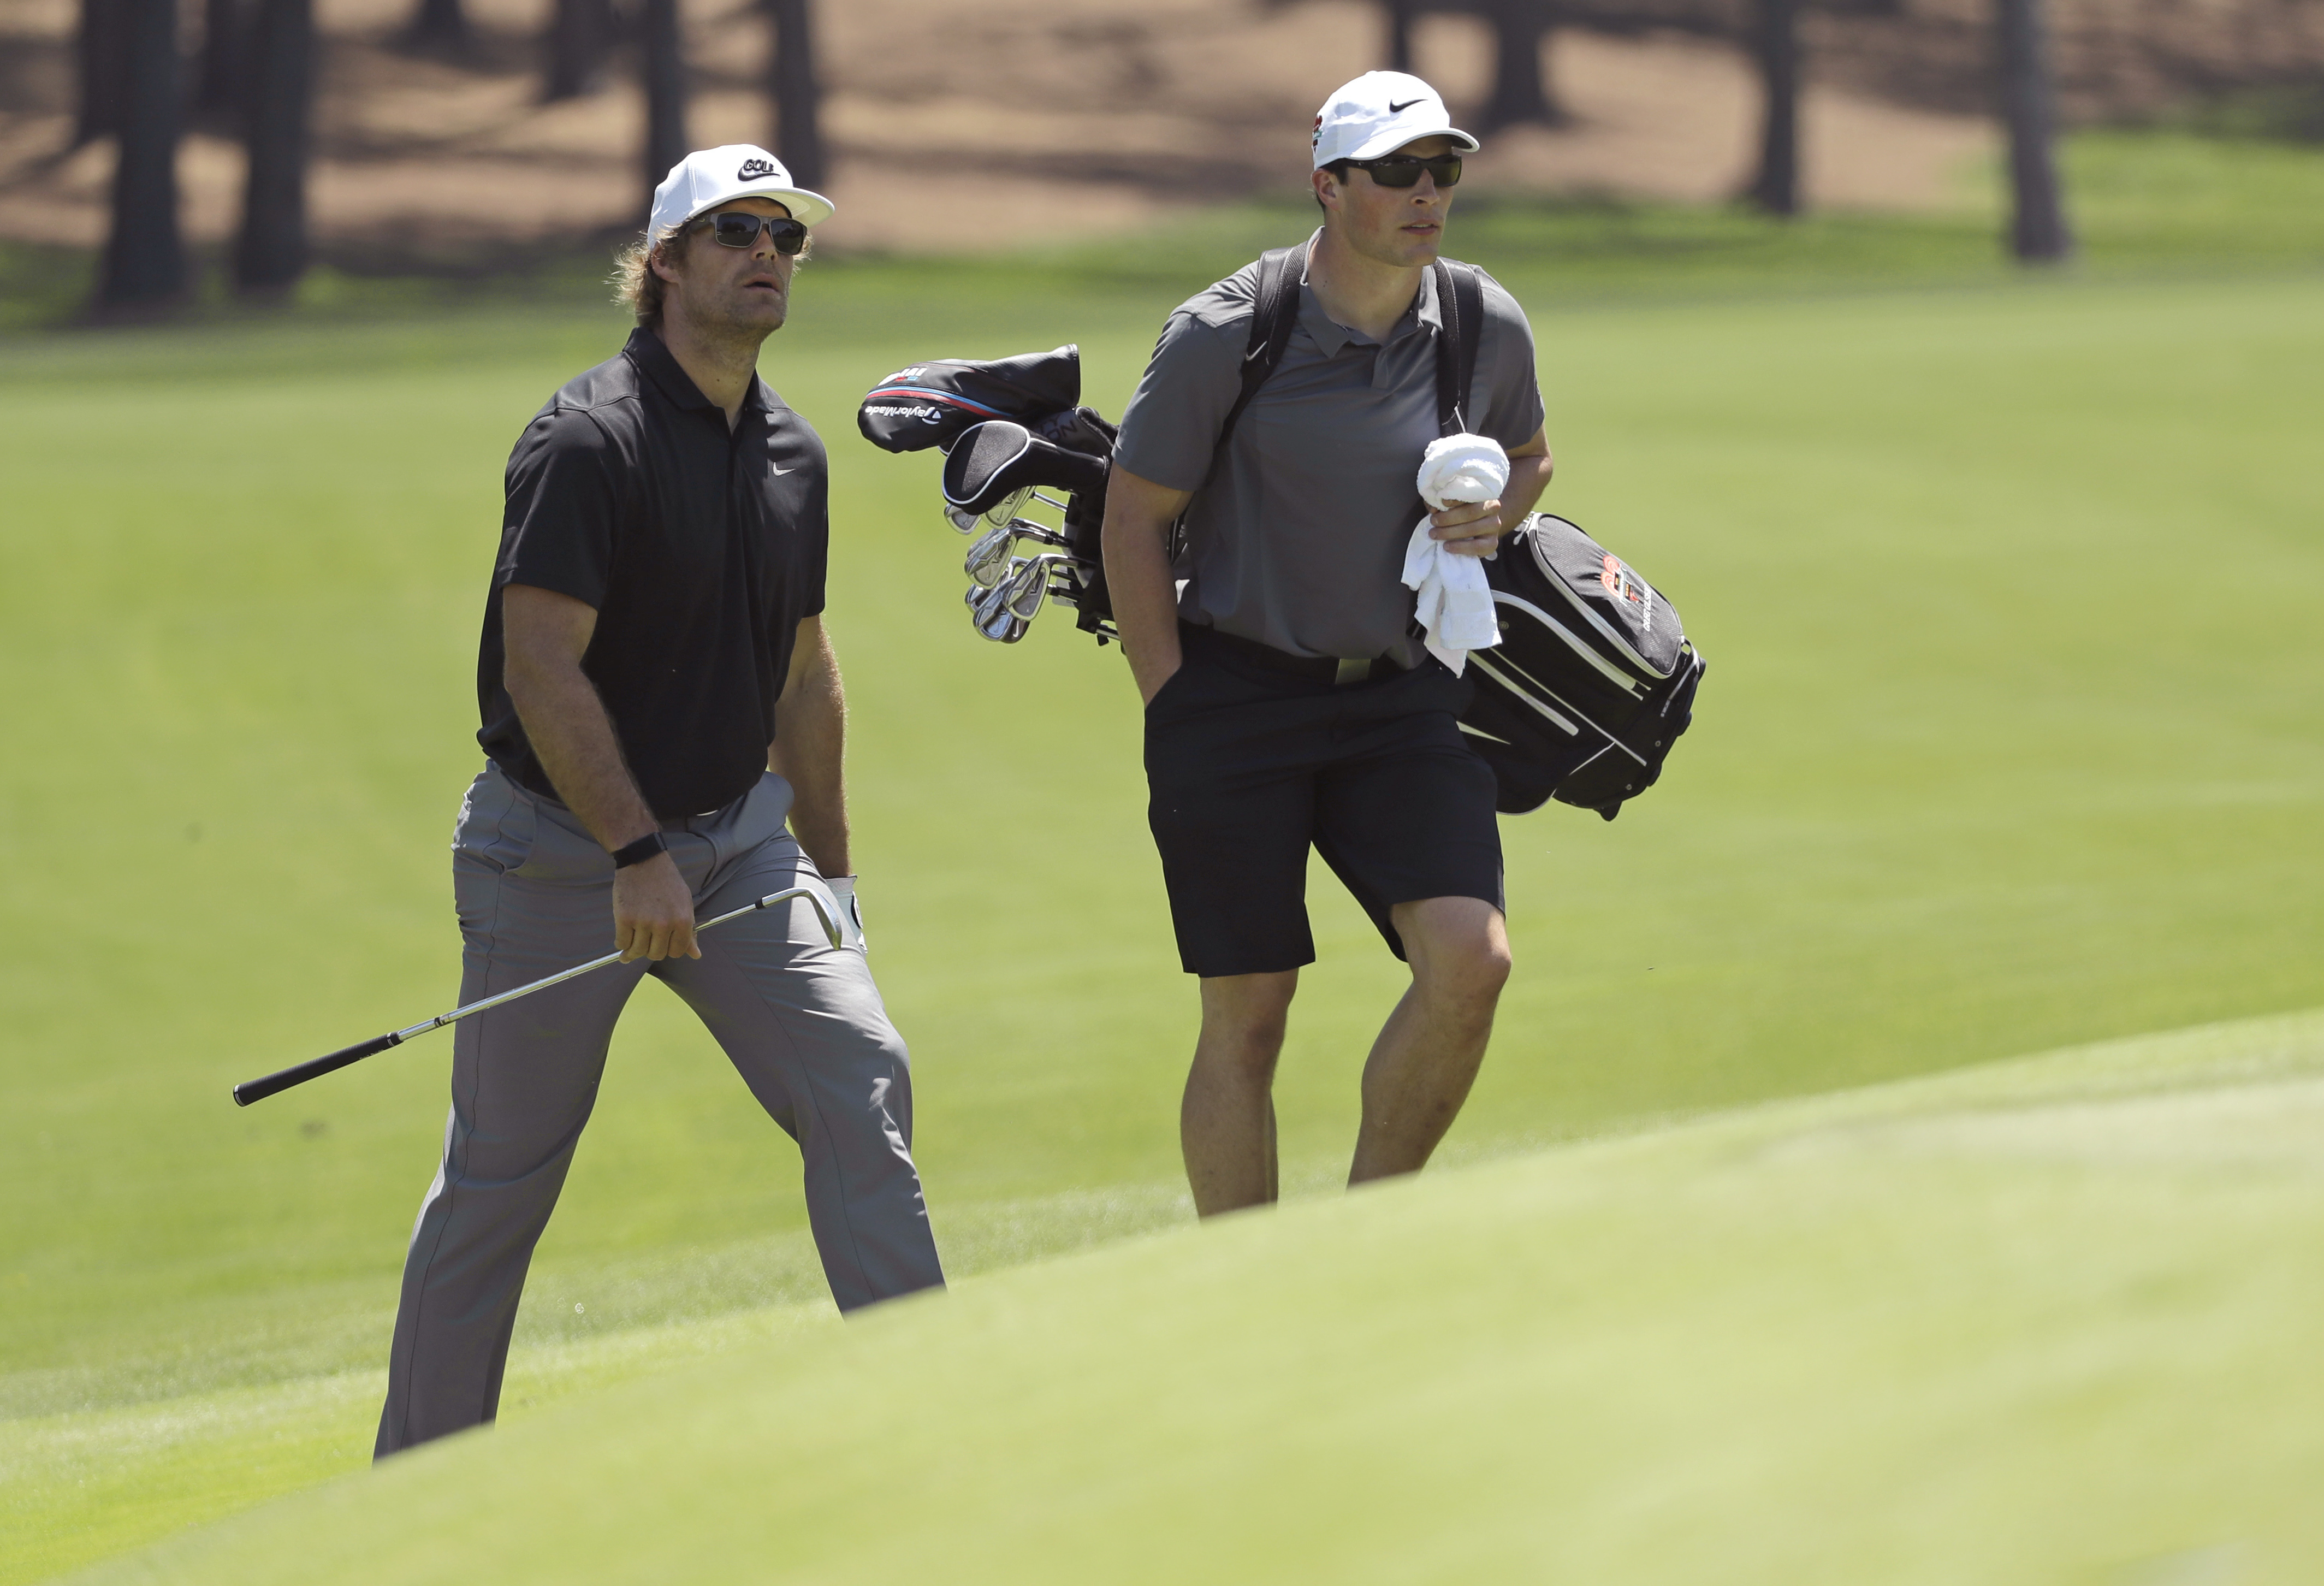 "<div class=""meta image-caption""><div class=""origin-logo origin-image ap""><span>AP</span></div><span class=""caption-text"">Carolina Panthers' Greg Olsen, left, and his caddie, Carolina Panthers' Luke Kuechly, right, walk to the second green during the pro-am. (Chuck Burton)</span></div>"